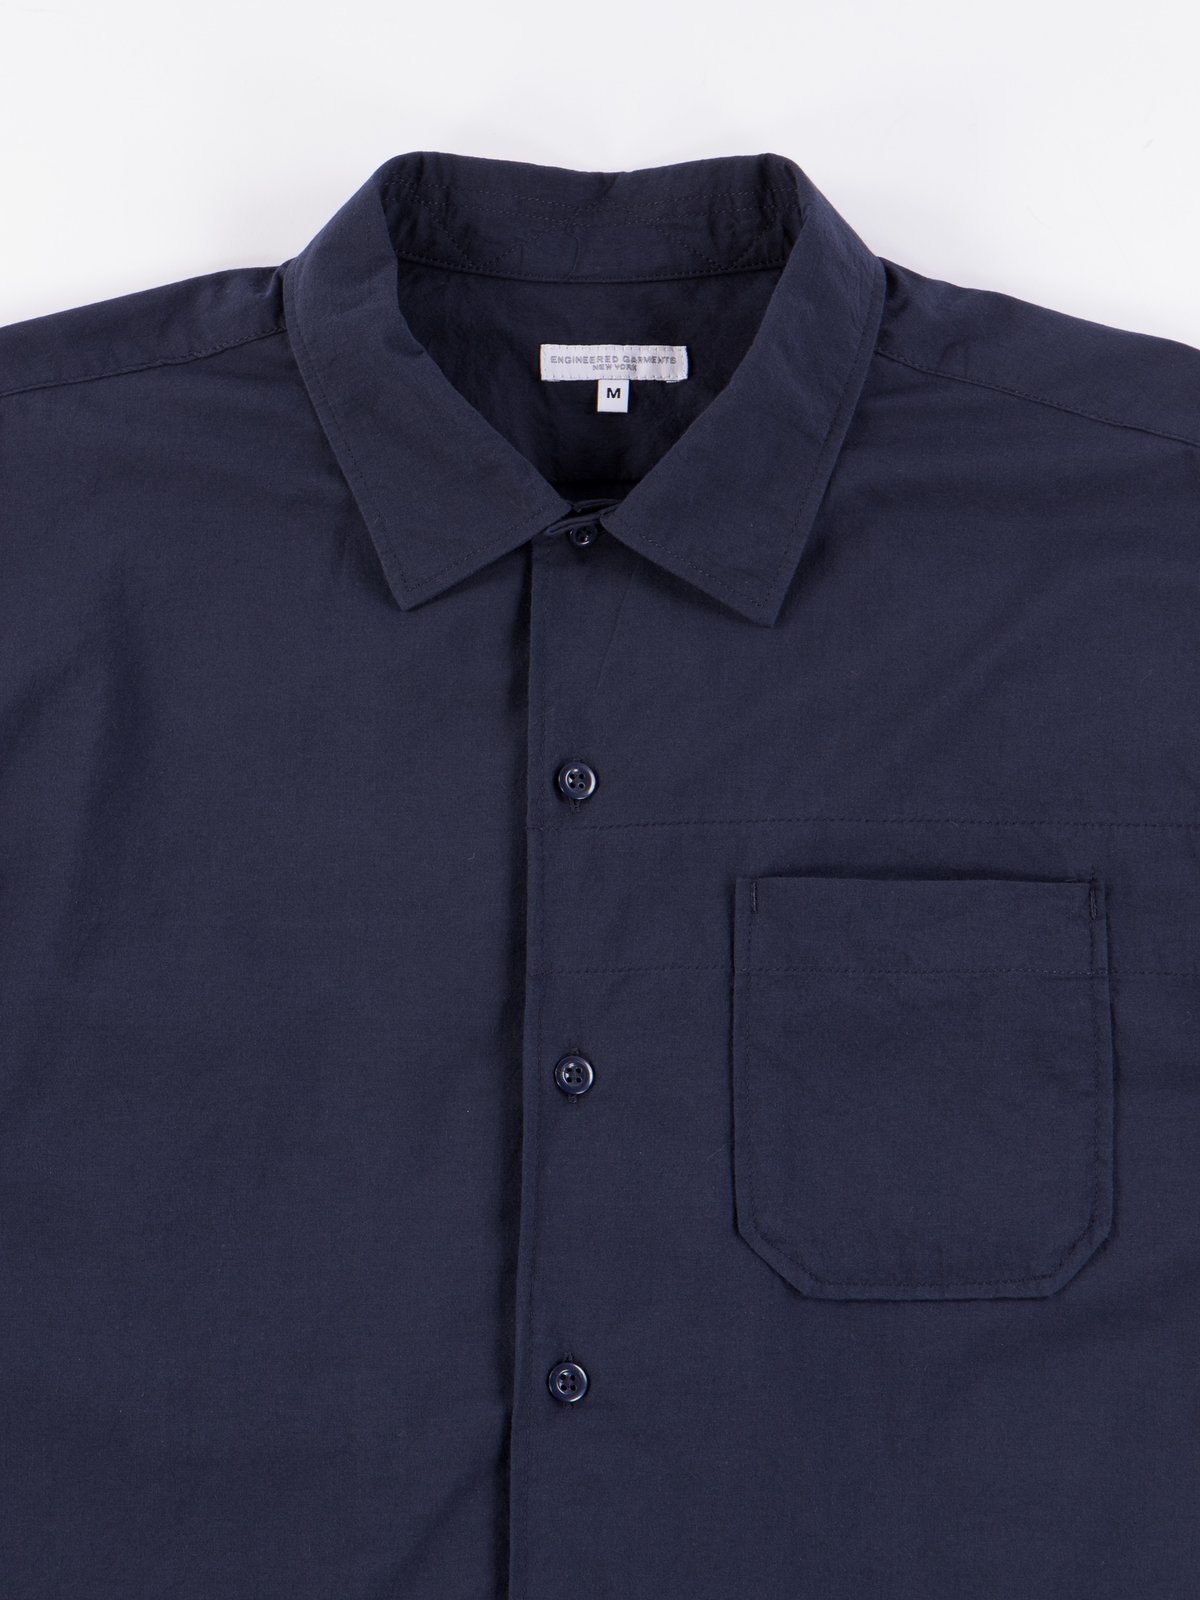 Navy Solid Cotton Lawn Camp Shirt  - Image 3